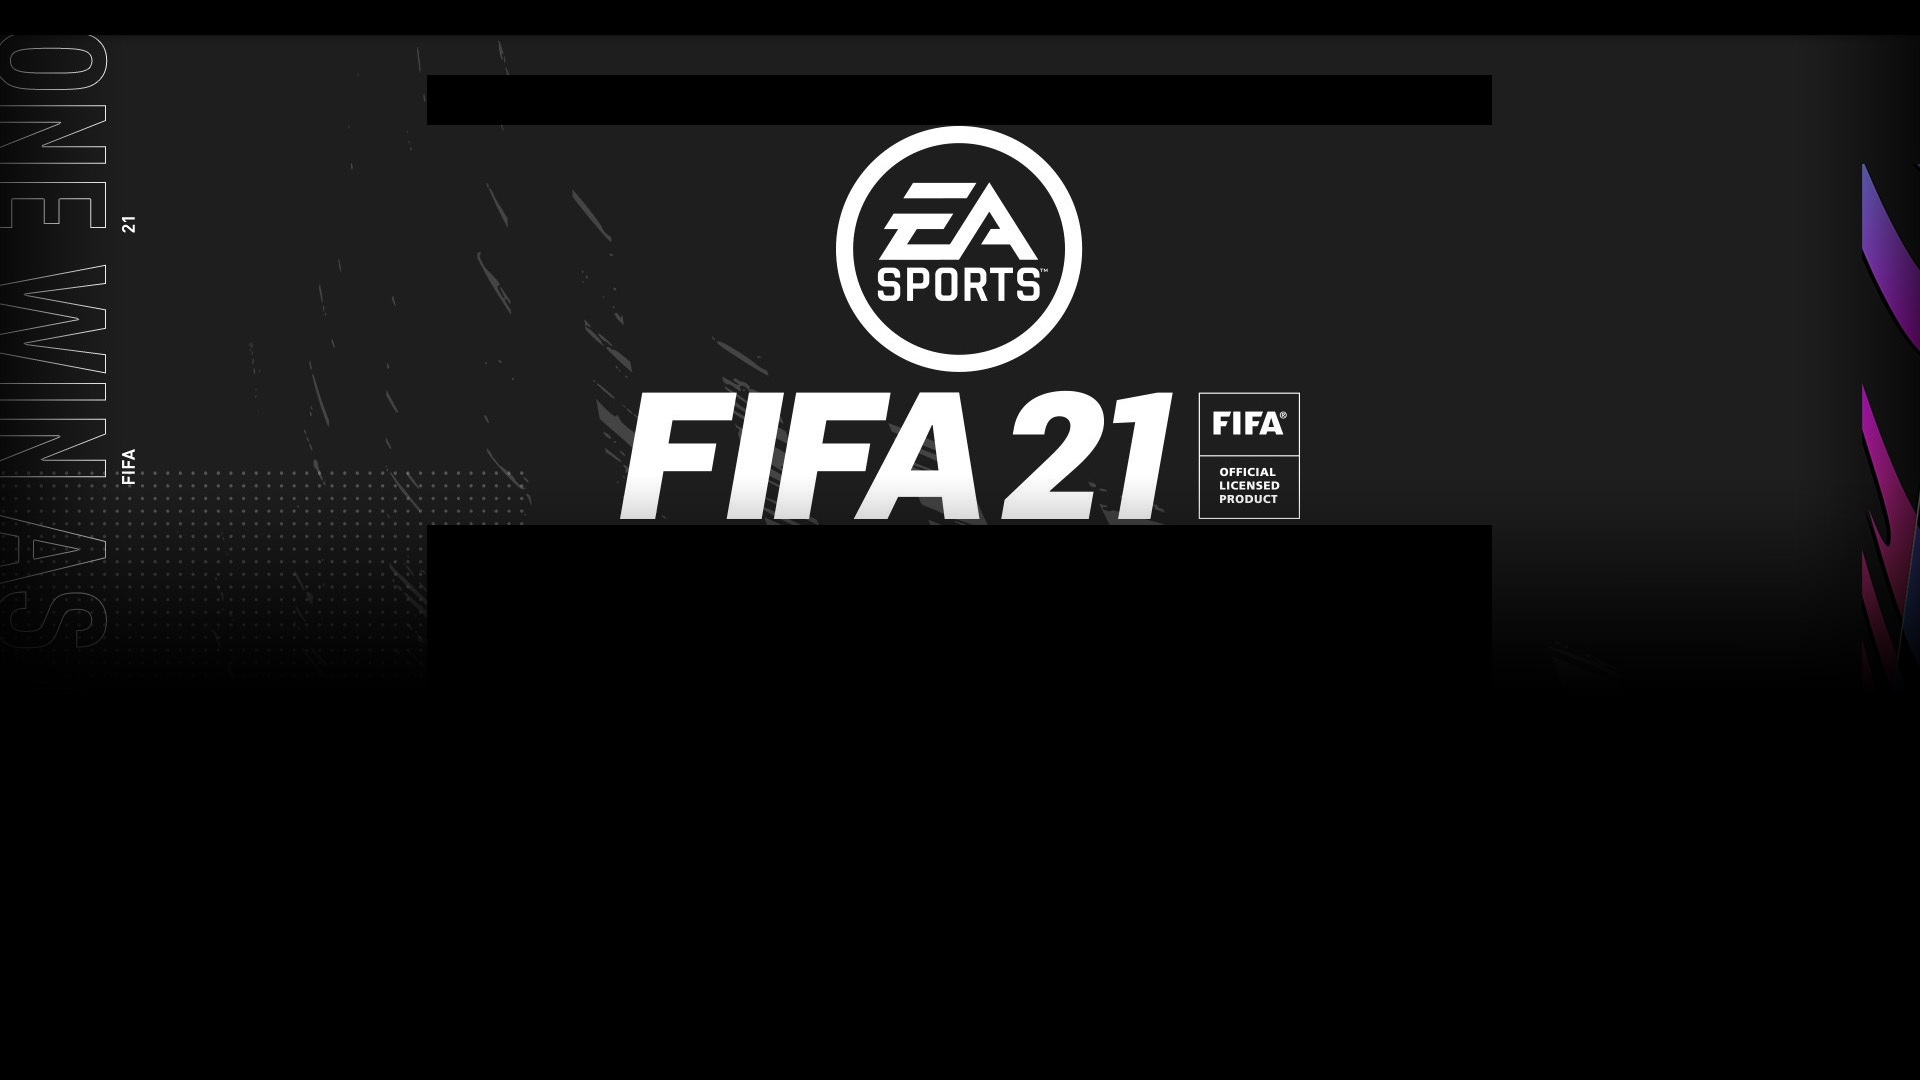 Fifa 21 [PC/PS4/Xbox One] video game